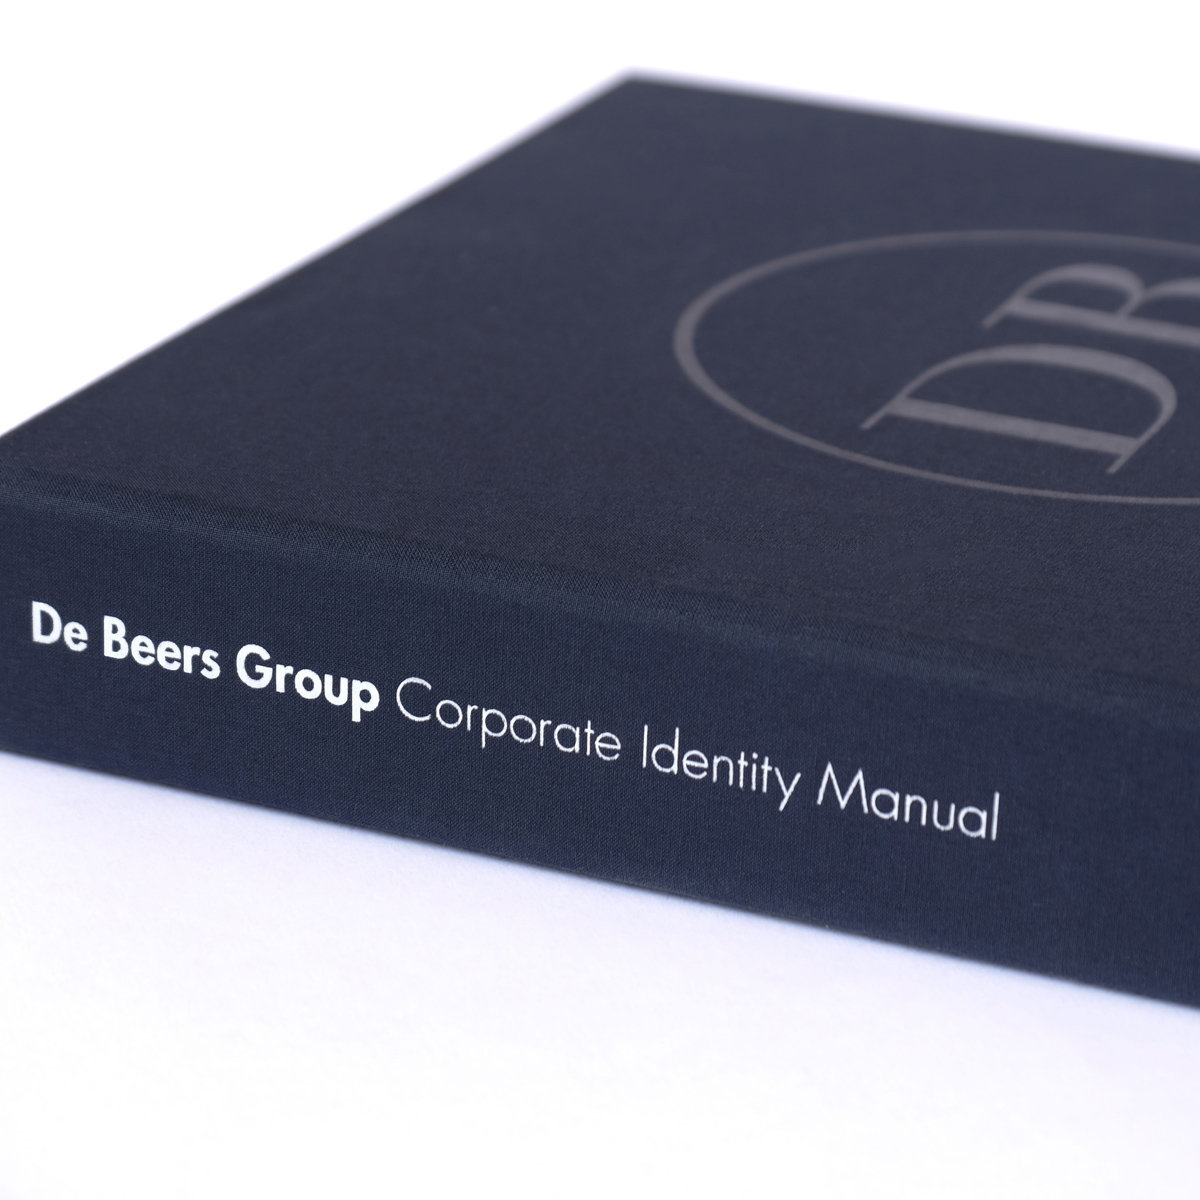 Pope and Wainwright Drive Internal Change for De Beers Group with New Corporate Identity